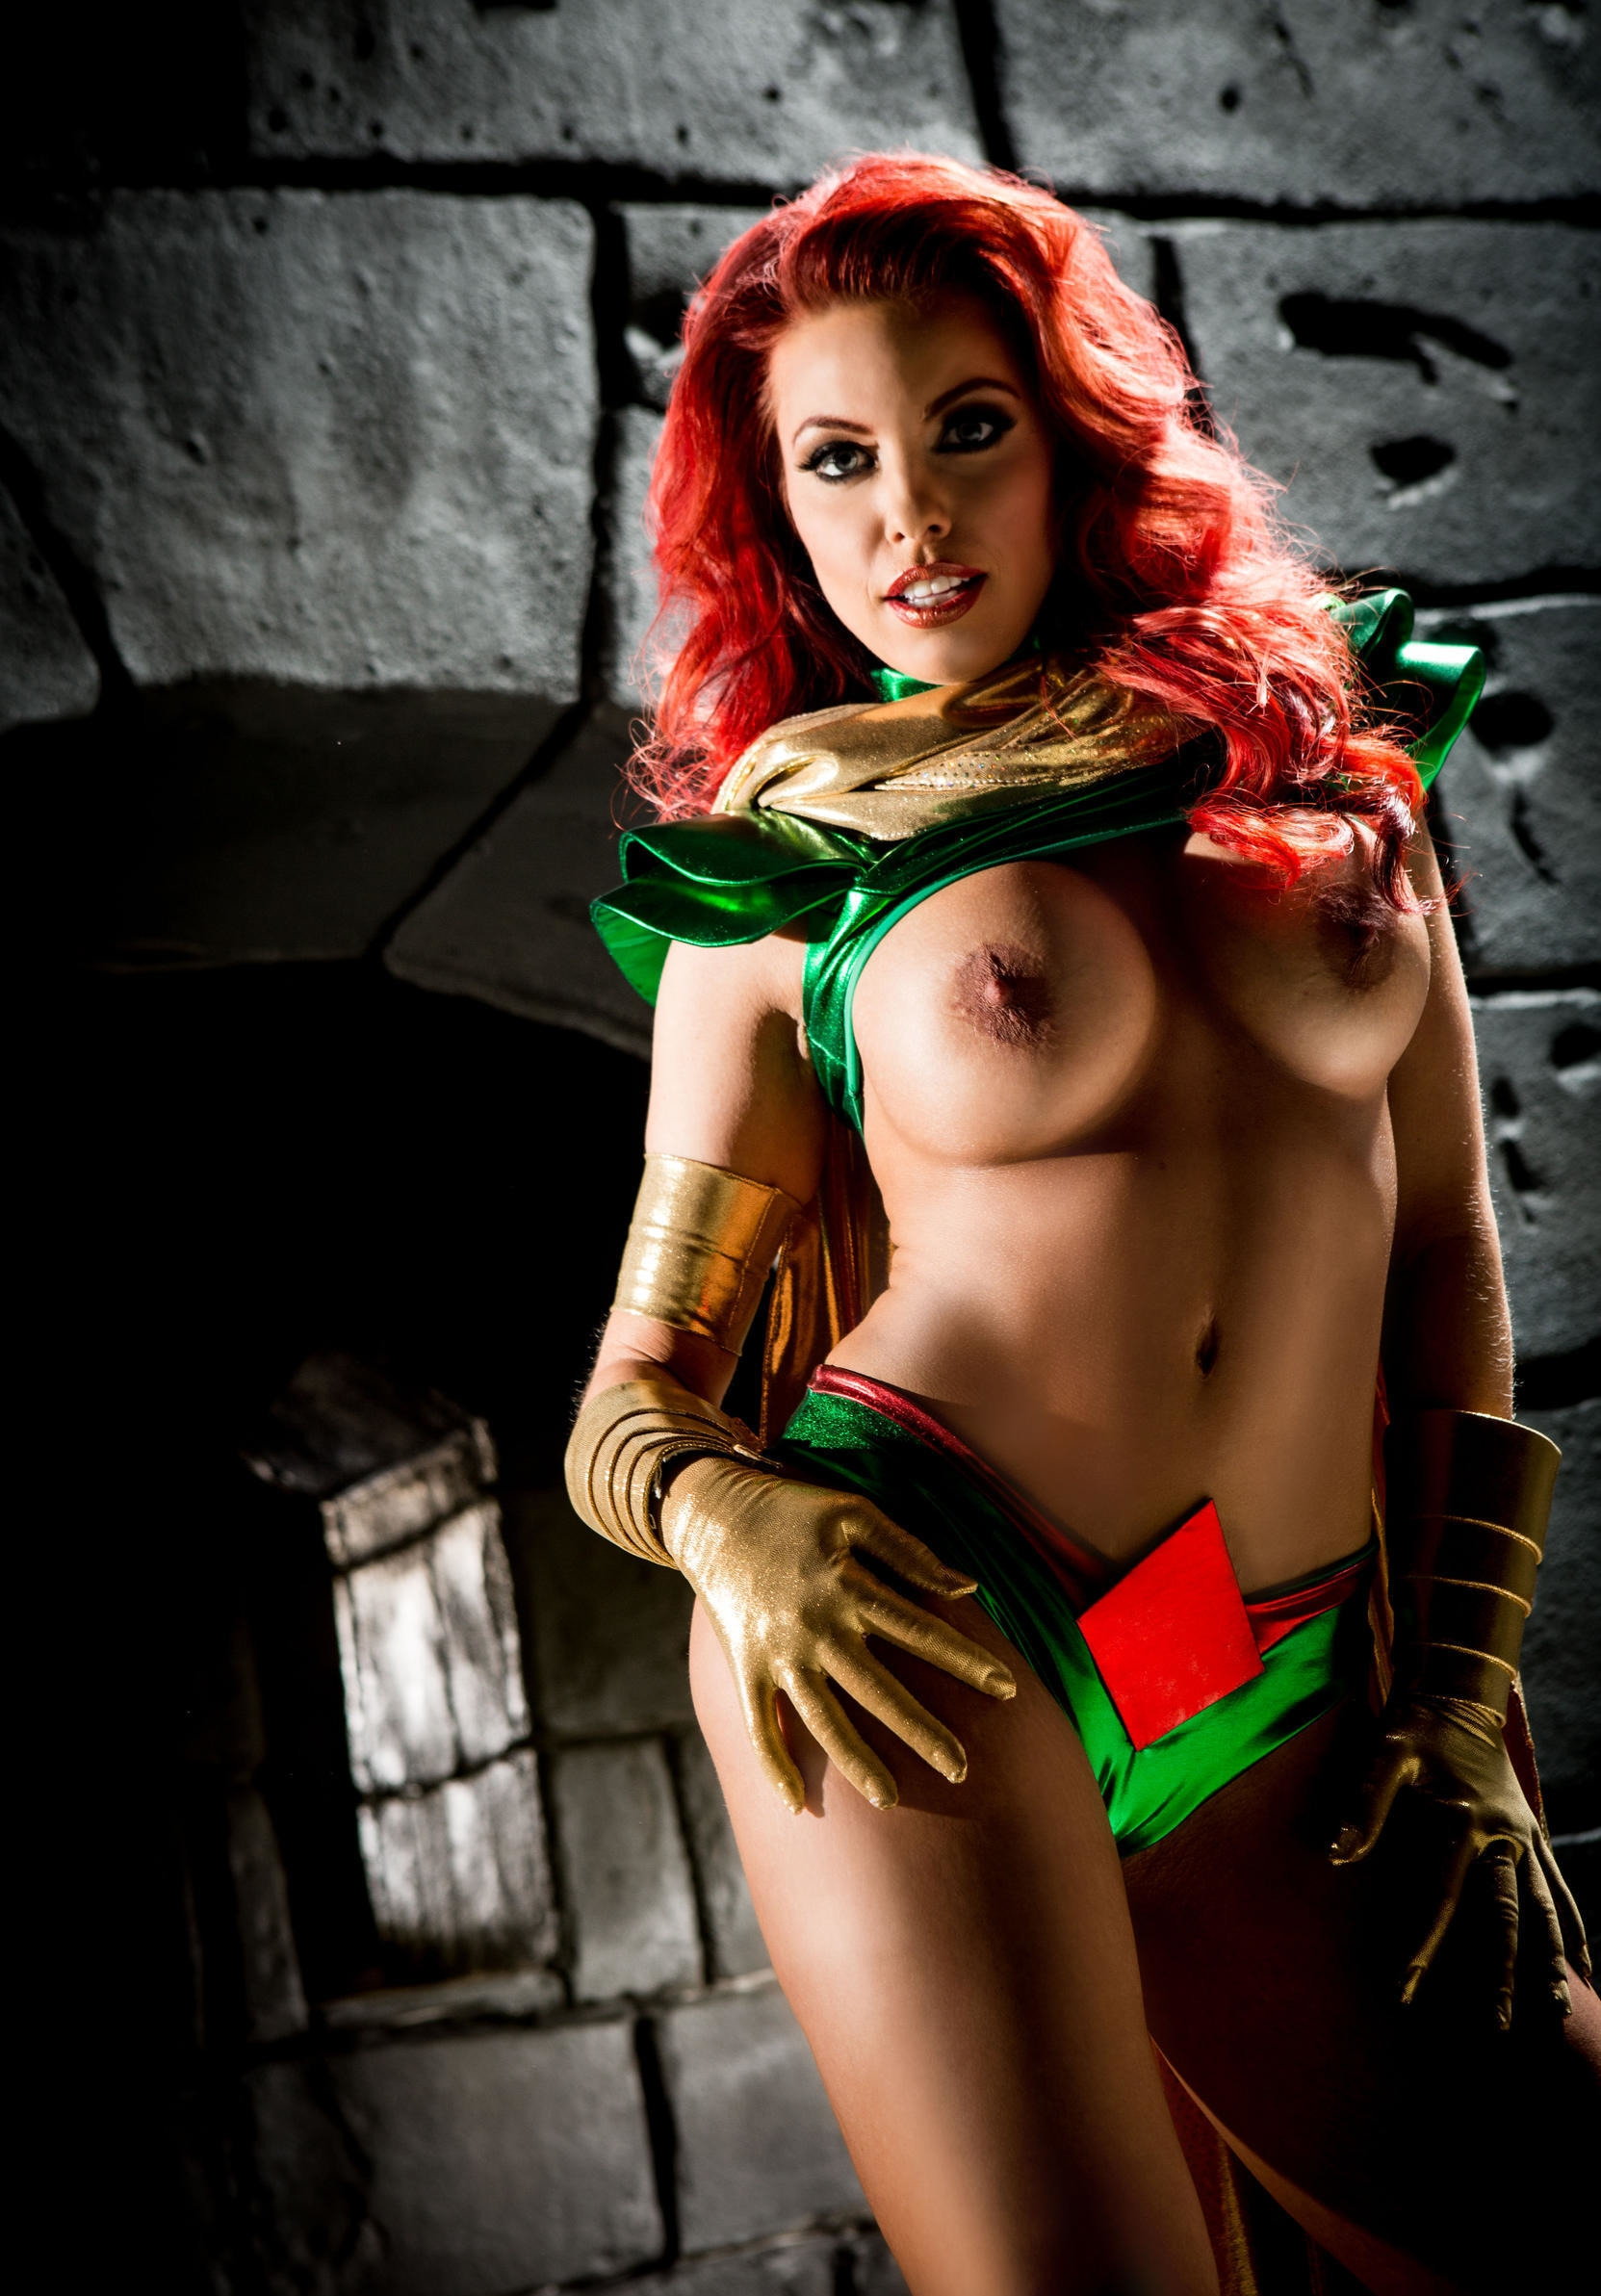 Nude heroes of cosplay, madison ivy porn anal